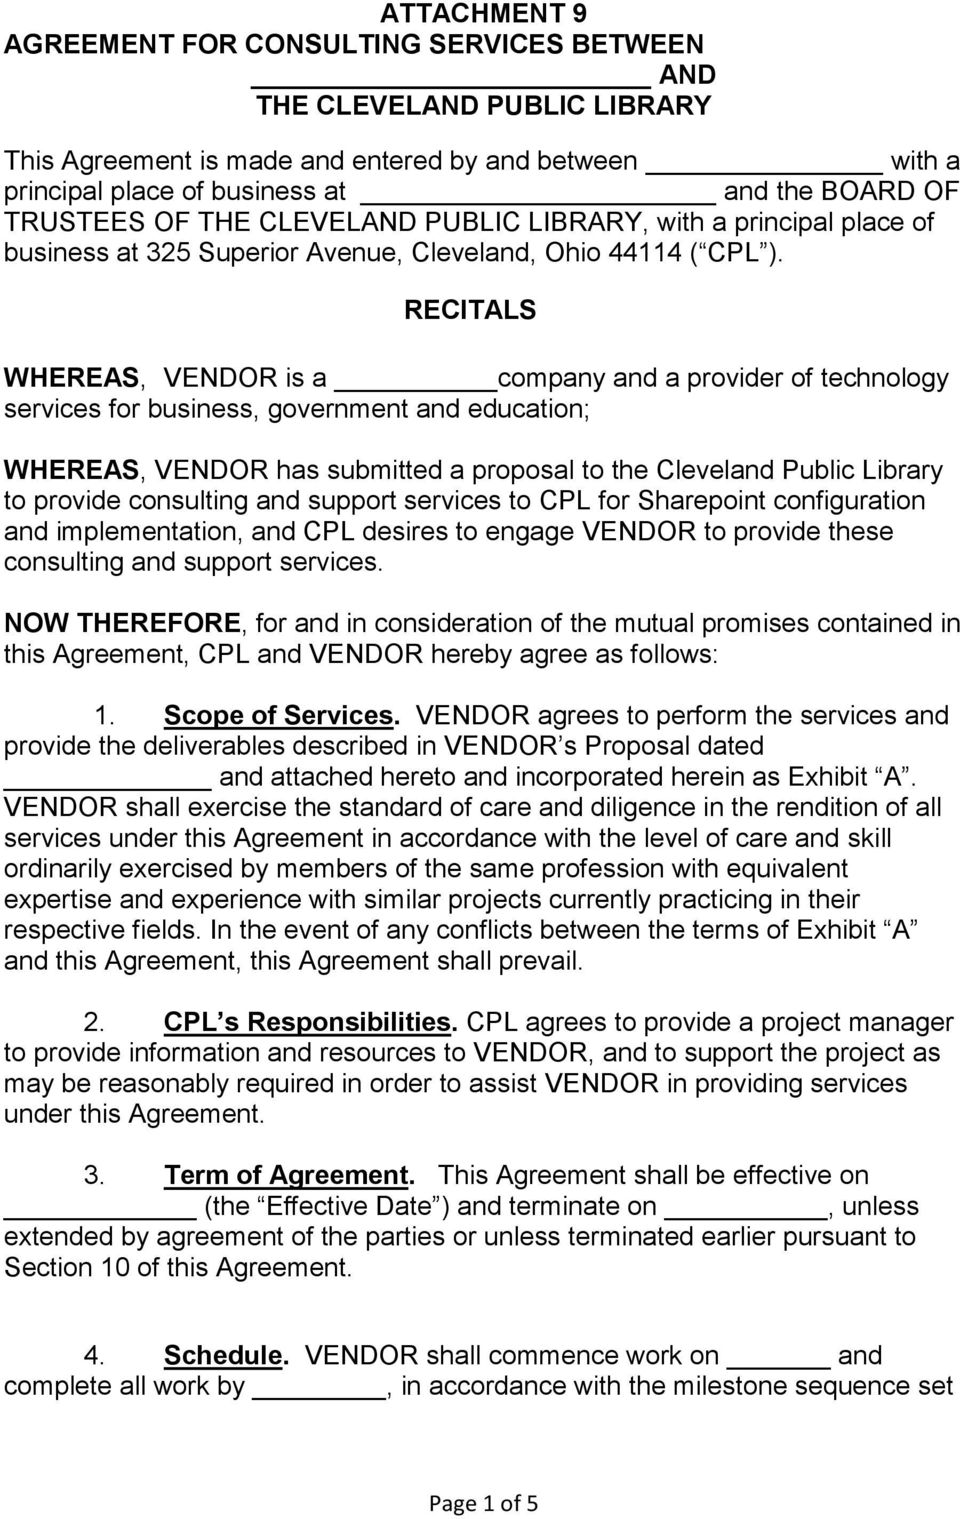 RECITALS WHEREAS, VENDOR is a company and a provider of technology services for business, government and education; WHEREAS, VENDOR has submitted a proposal to the Cleveland Public Library to provide